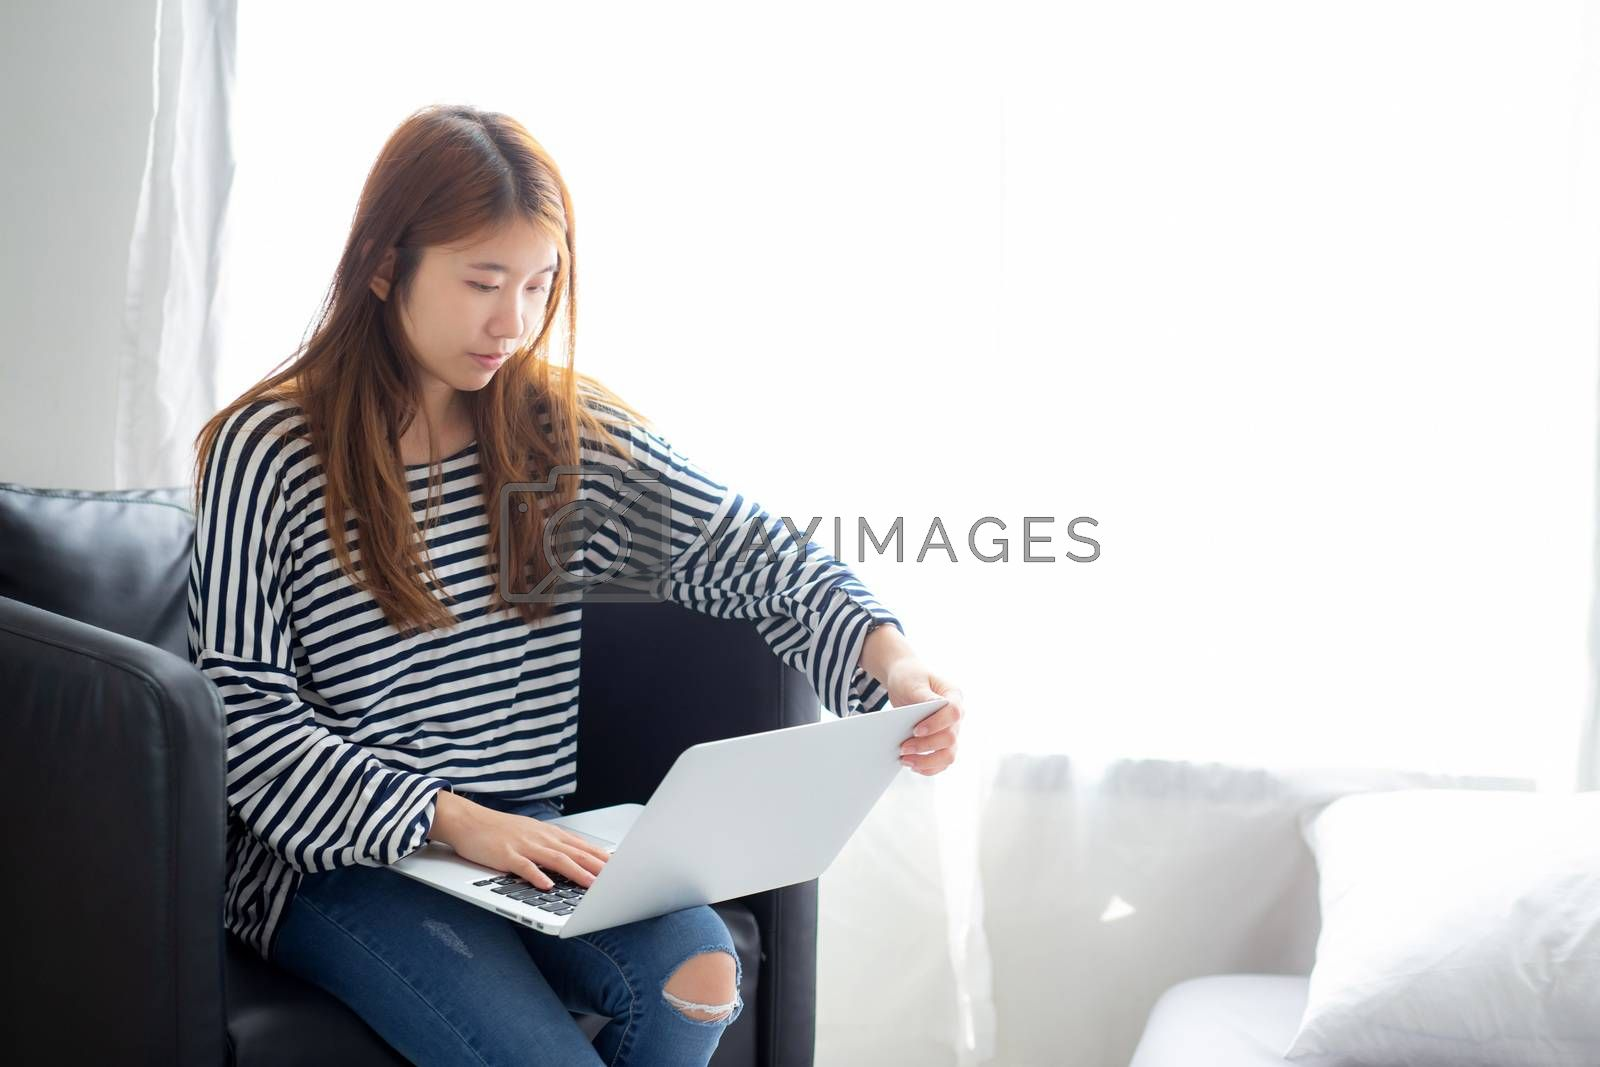 Beautiful of portrait young asian woman using laptop computer  for leisure on chair at living room, girl working online with notebook freelance, communication business concept.